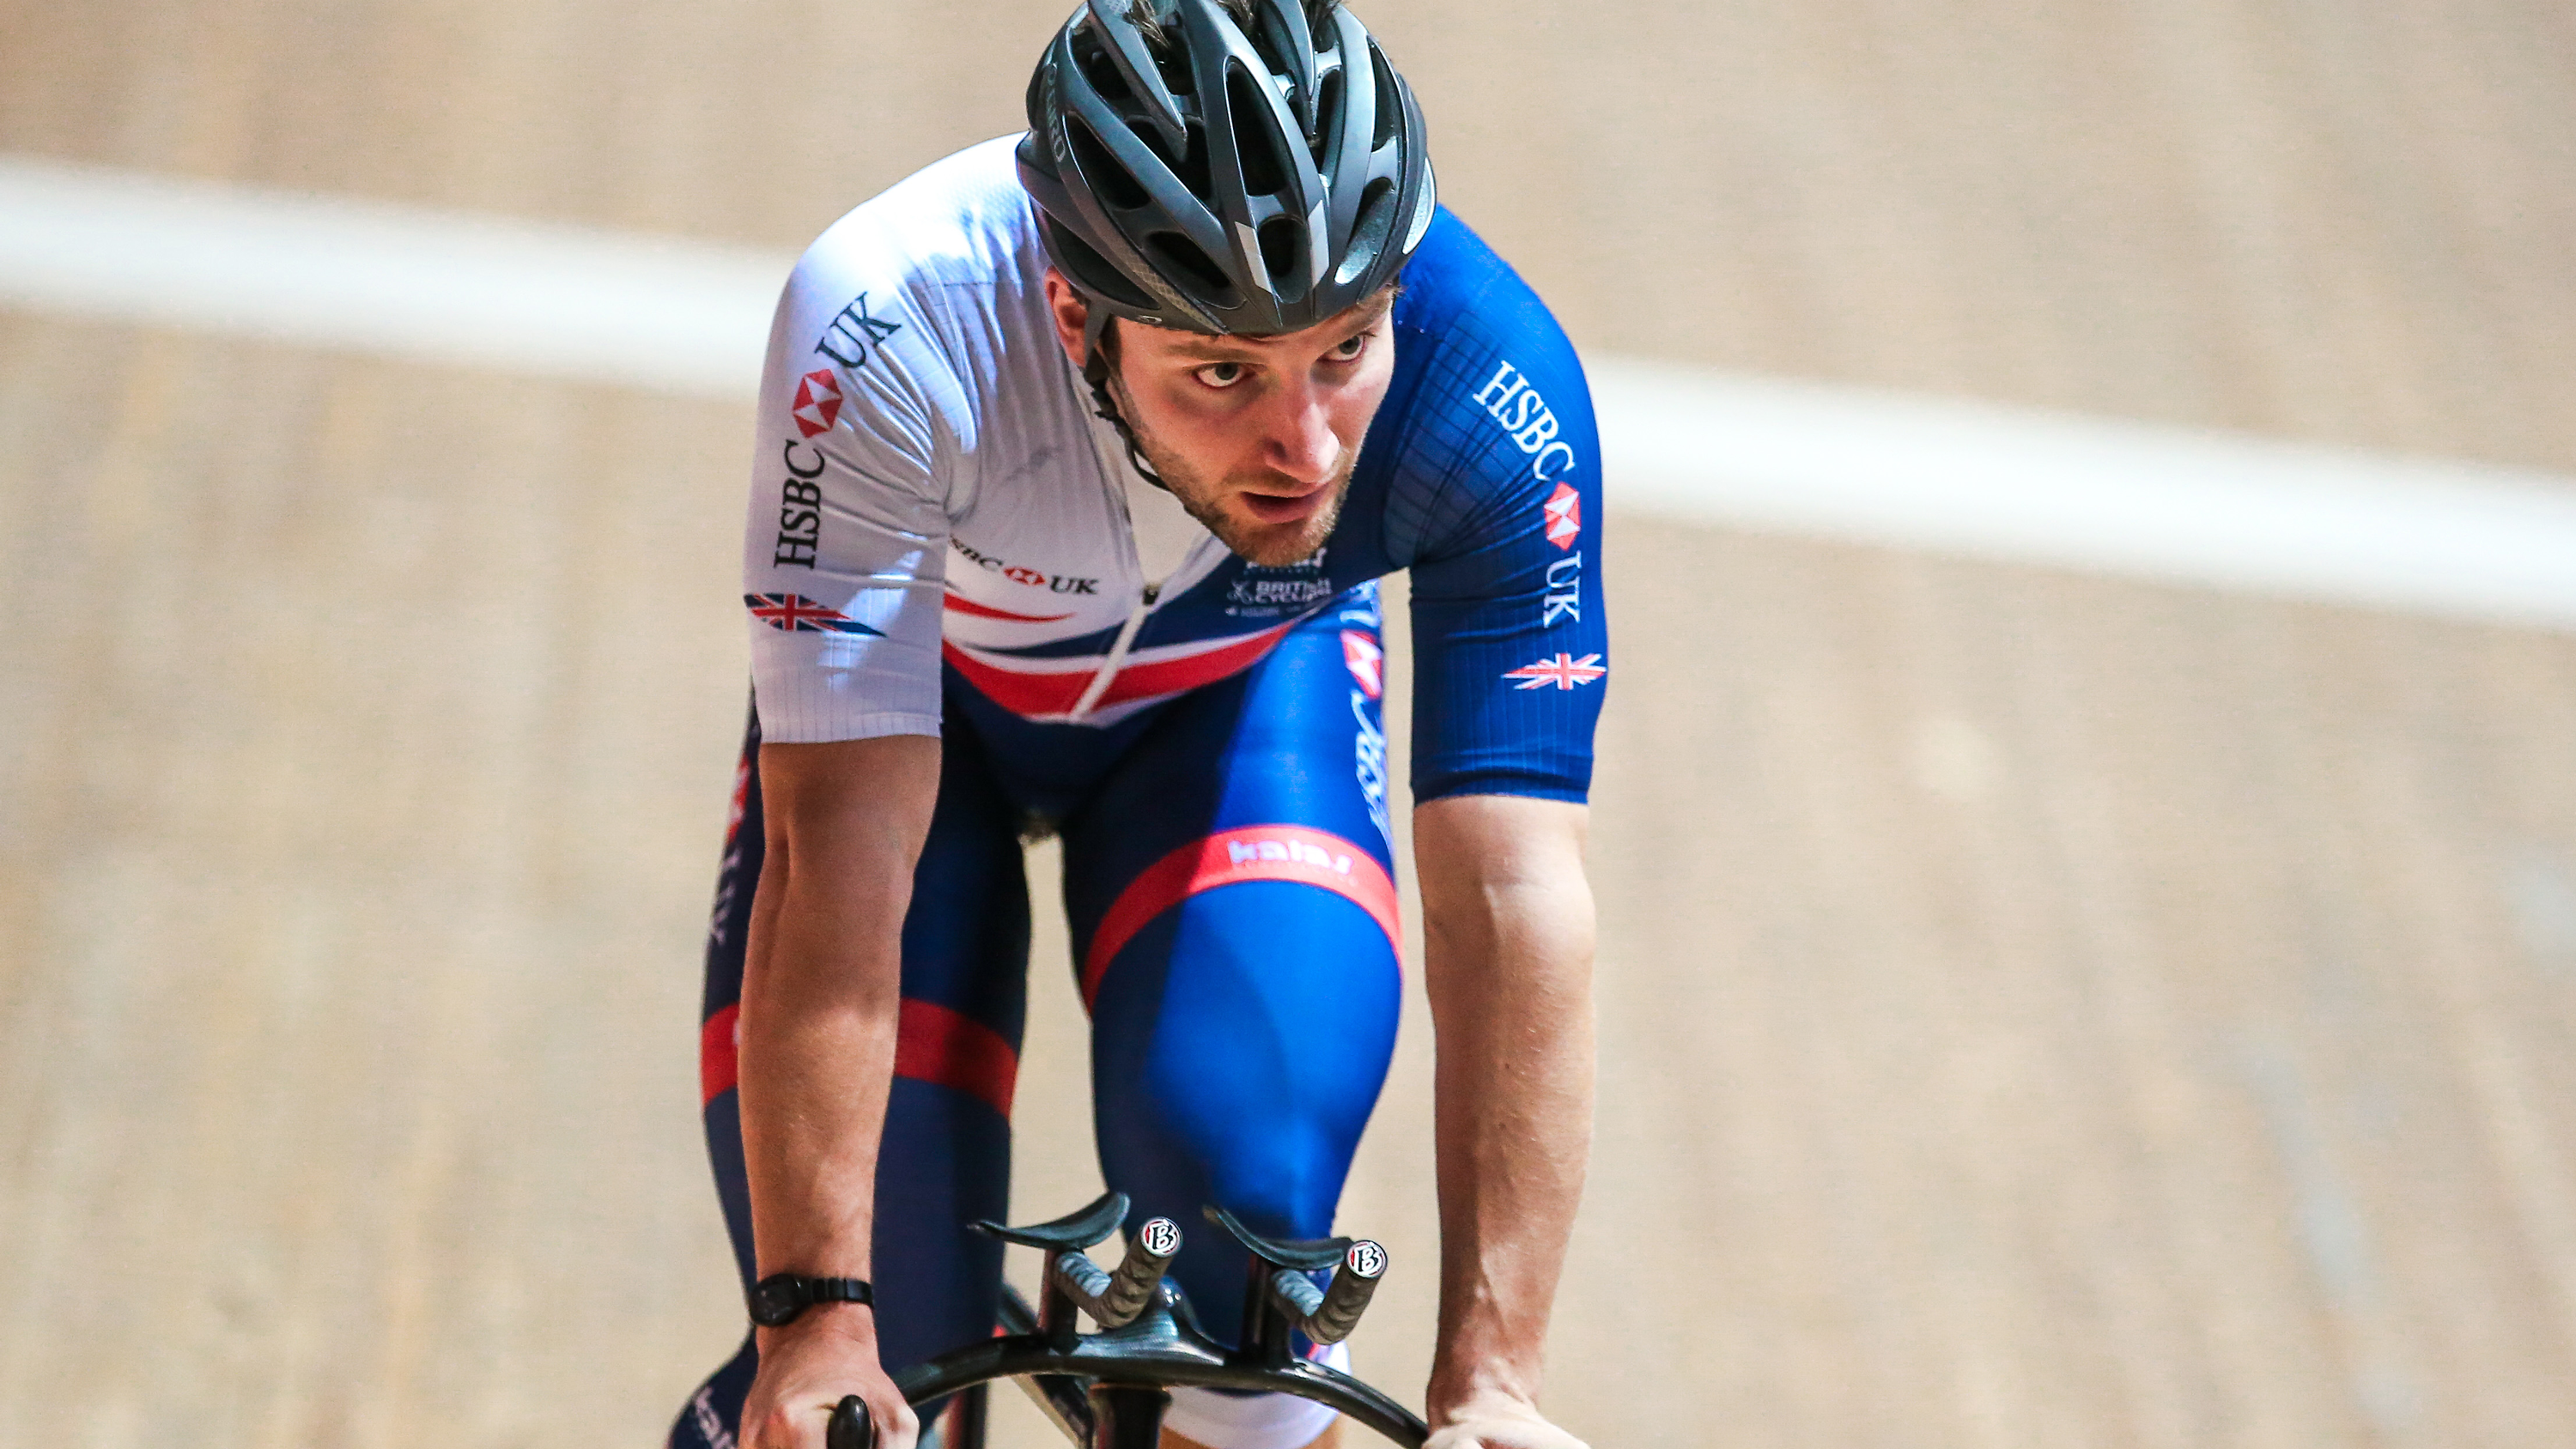 The Great Britain Cycling Team train ahead of the UCI World Track Cycling Championships in Hong Kong